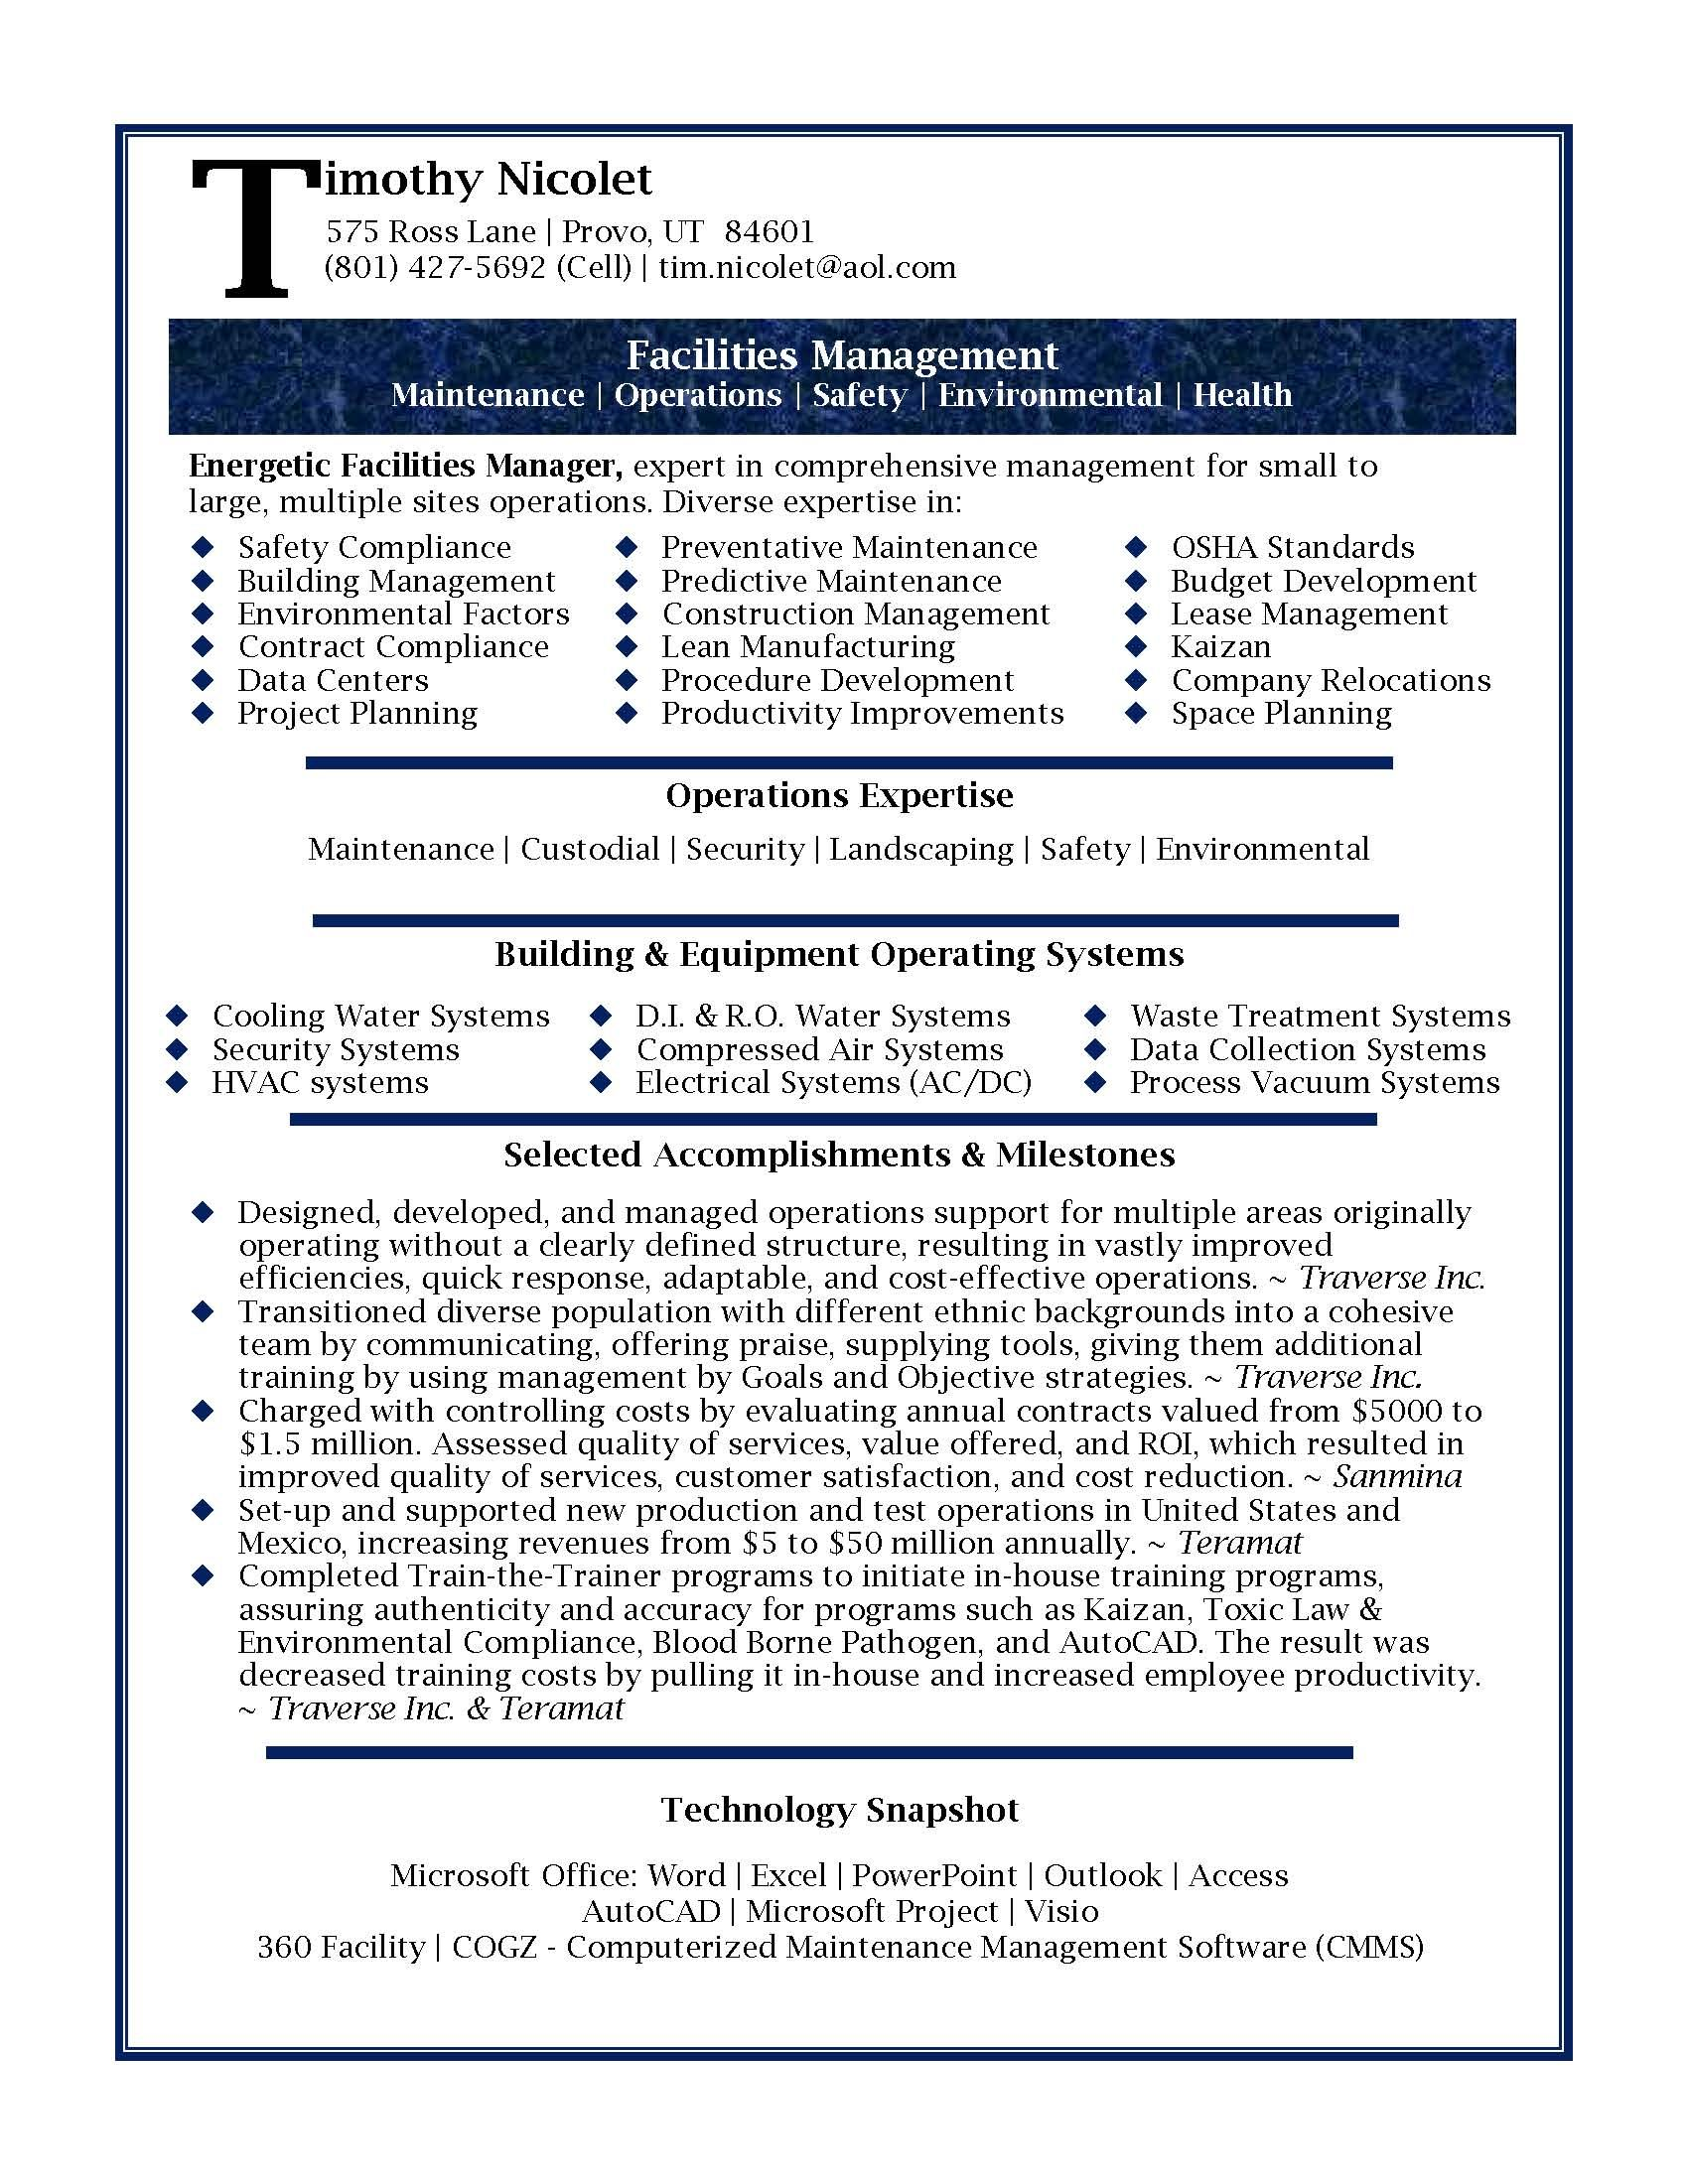 resume samples professional facilities manager resume sample - Manager Resume Samples Free